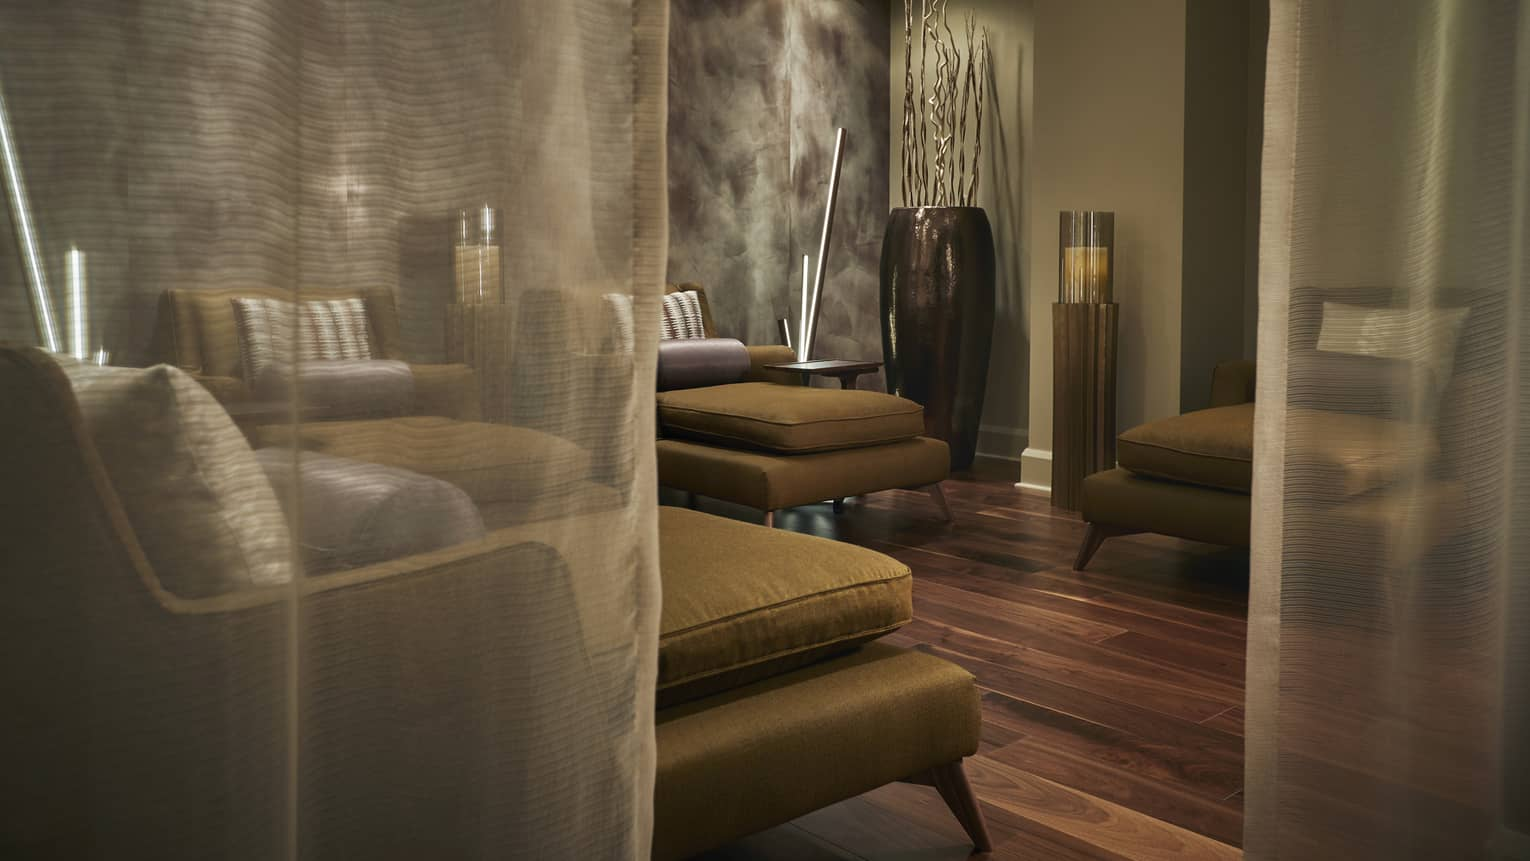 Sheer curtains by plush gold armchairs in Forbes Five Star Spa